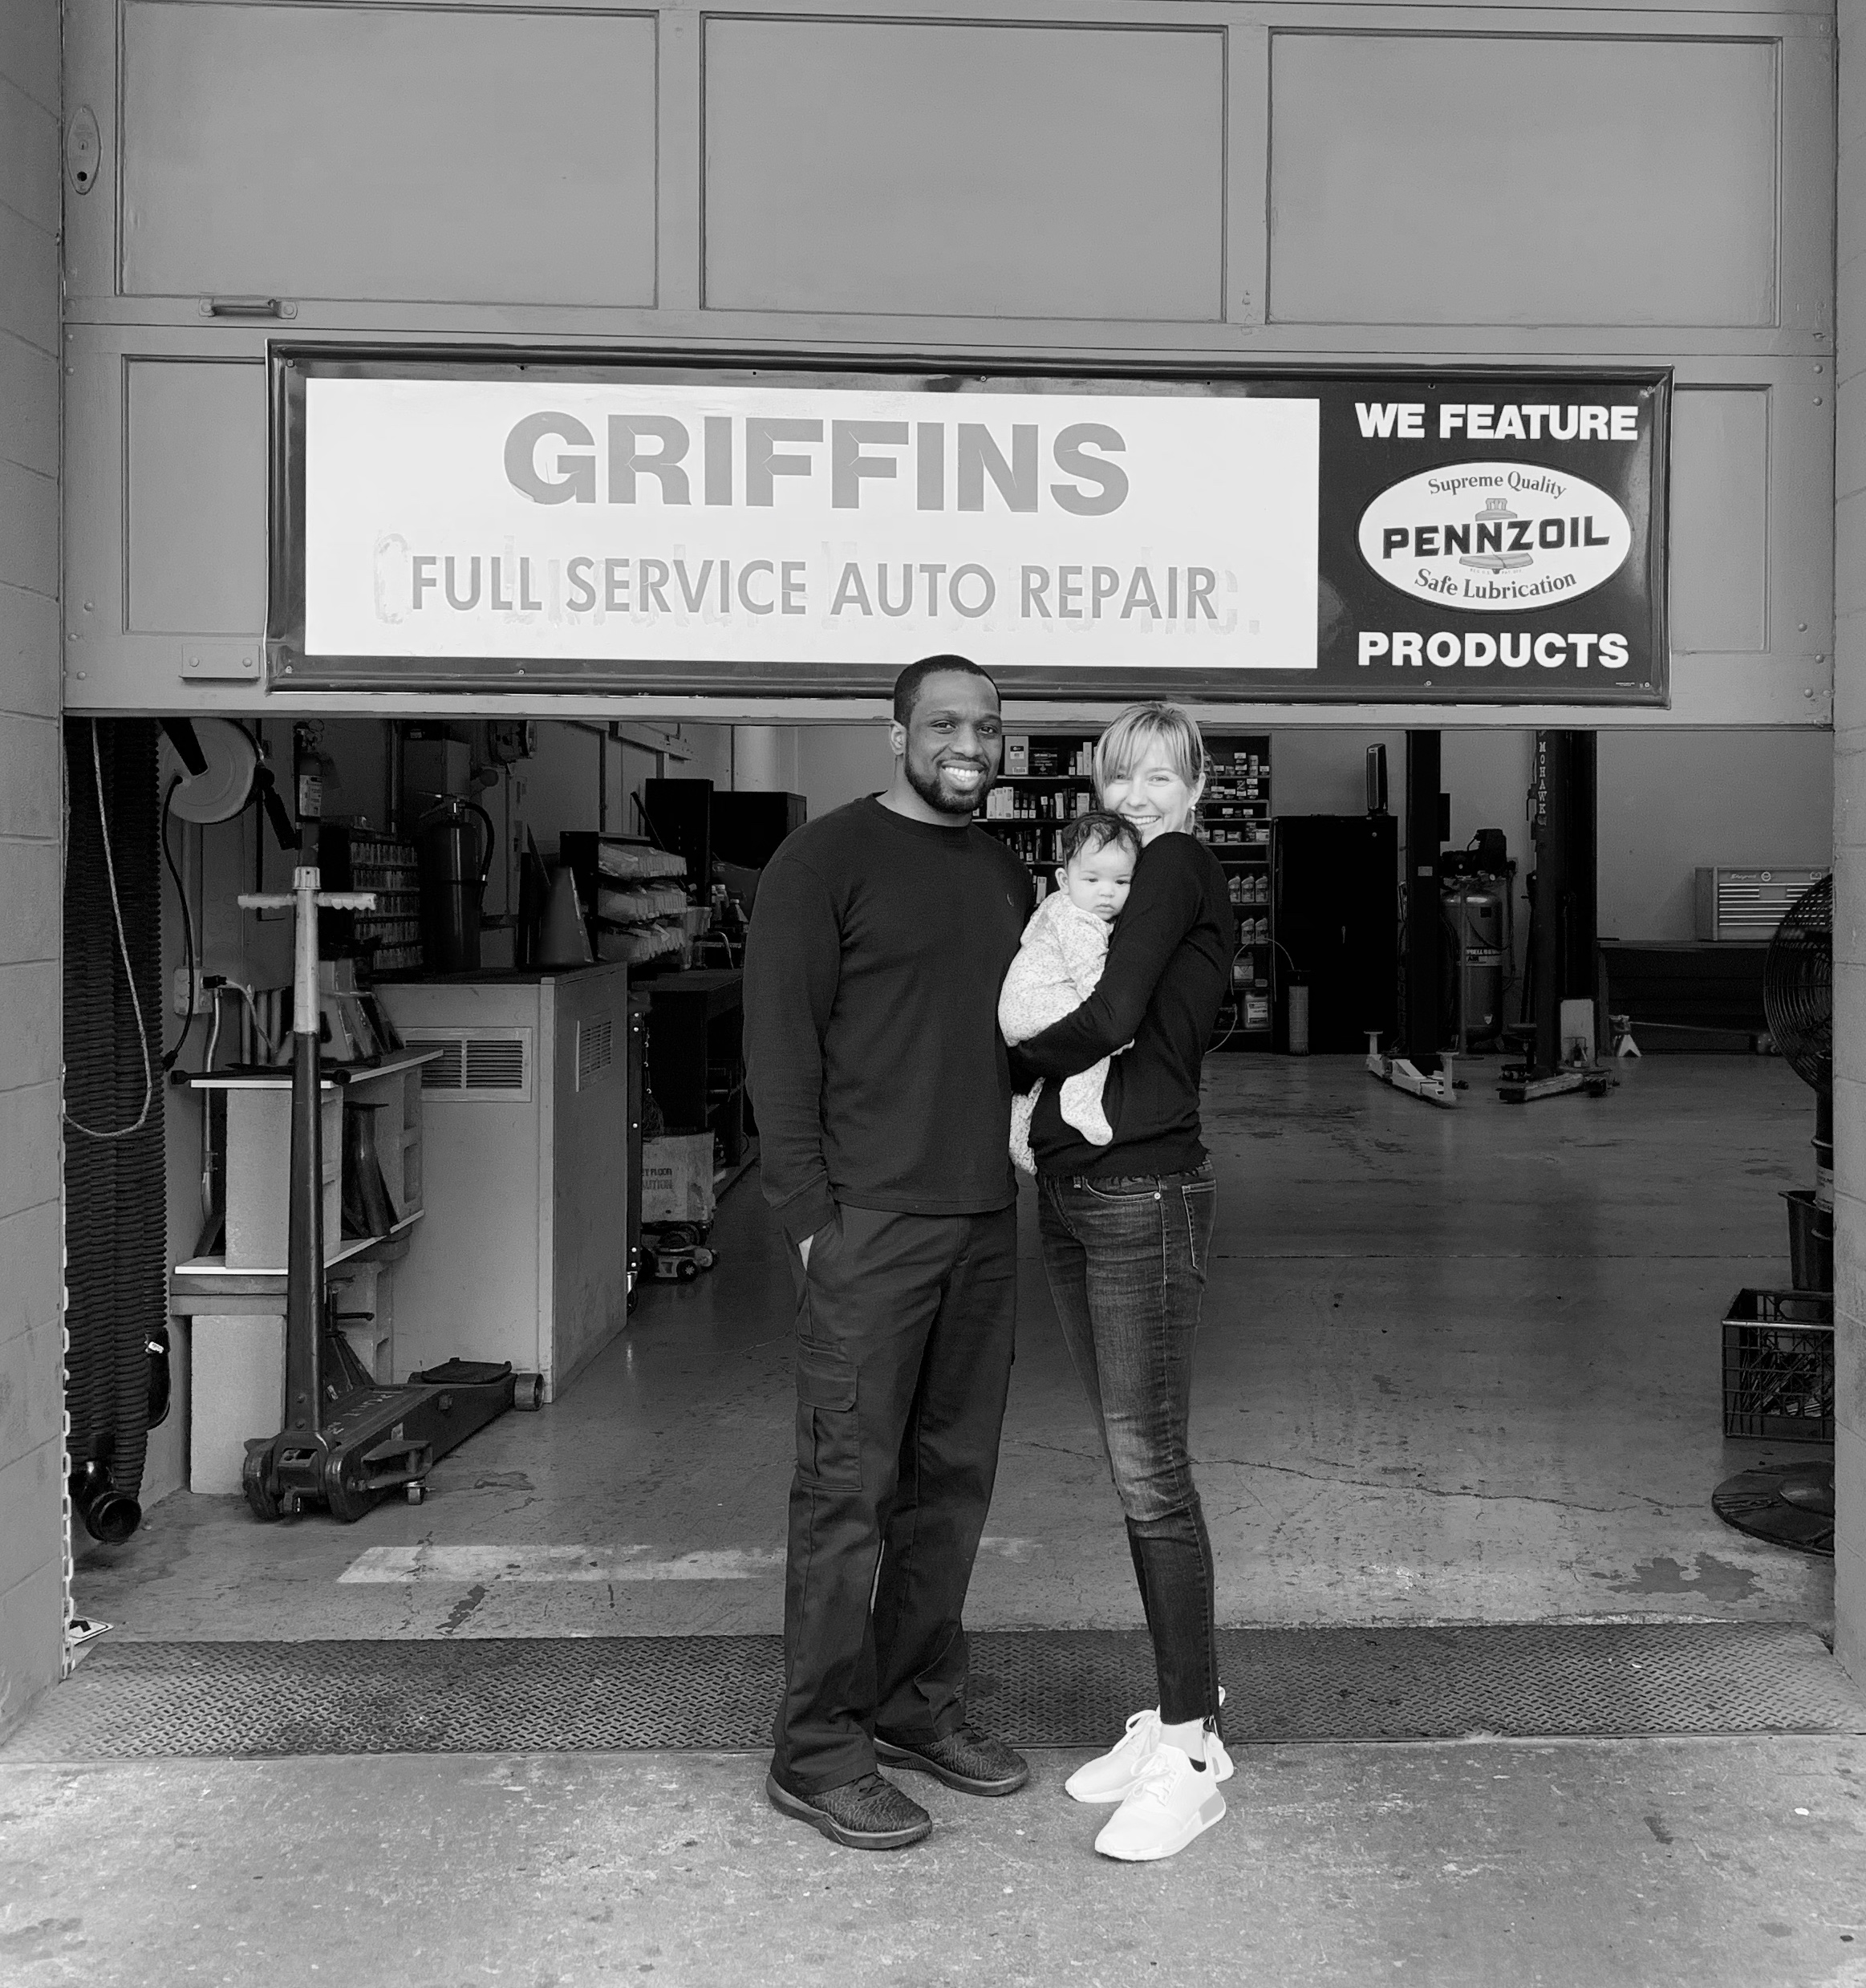 - Since its establishment 55 years ago, Griffin's Auto Repair in Mountain View has offered residents of San Mateo and Santa Clara County outstanding auto repair services. In fact, this repair shop is number one for factory maintenance and oil changes in all of Mountain View, voted Best of Mountain View every year from 2011 to 2017.Dennis Griffin and his team have offered exceptional automotive repair services, and over the years have cemented their reputation for quality and timely work. On March 1, 2019, Dennis Griffin handed the keys over to Dennis Muaka and is staying on as his mentor. They are dedicated to maintaining the same high standards Griffin's Auto Repair customers have experienced for over half a century.Dennis M. has over 8 years of experience in the industry, having worked at several independent shops and a dealership. He brings his exceptional diagnostic skills to Griffin's Auto Repair, making your service with him and his team one you can trust. Tune ups, oil changes, inspections, brake jobs, fluid flushes are all done fast and accurate by the team at Griffins. Alignments, tire balances and replacement tires are all done in house now to get you in and out as fast as possible.